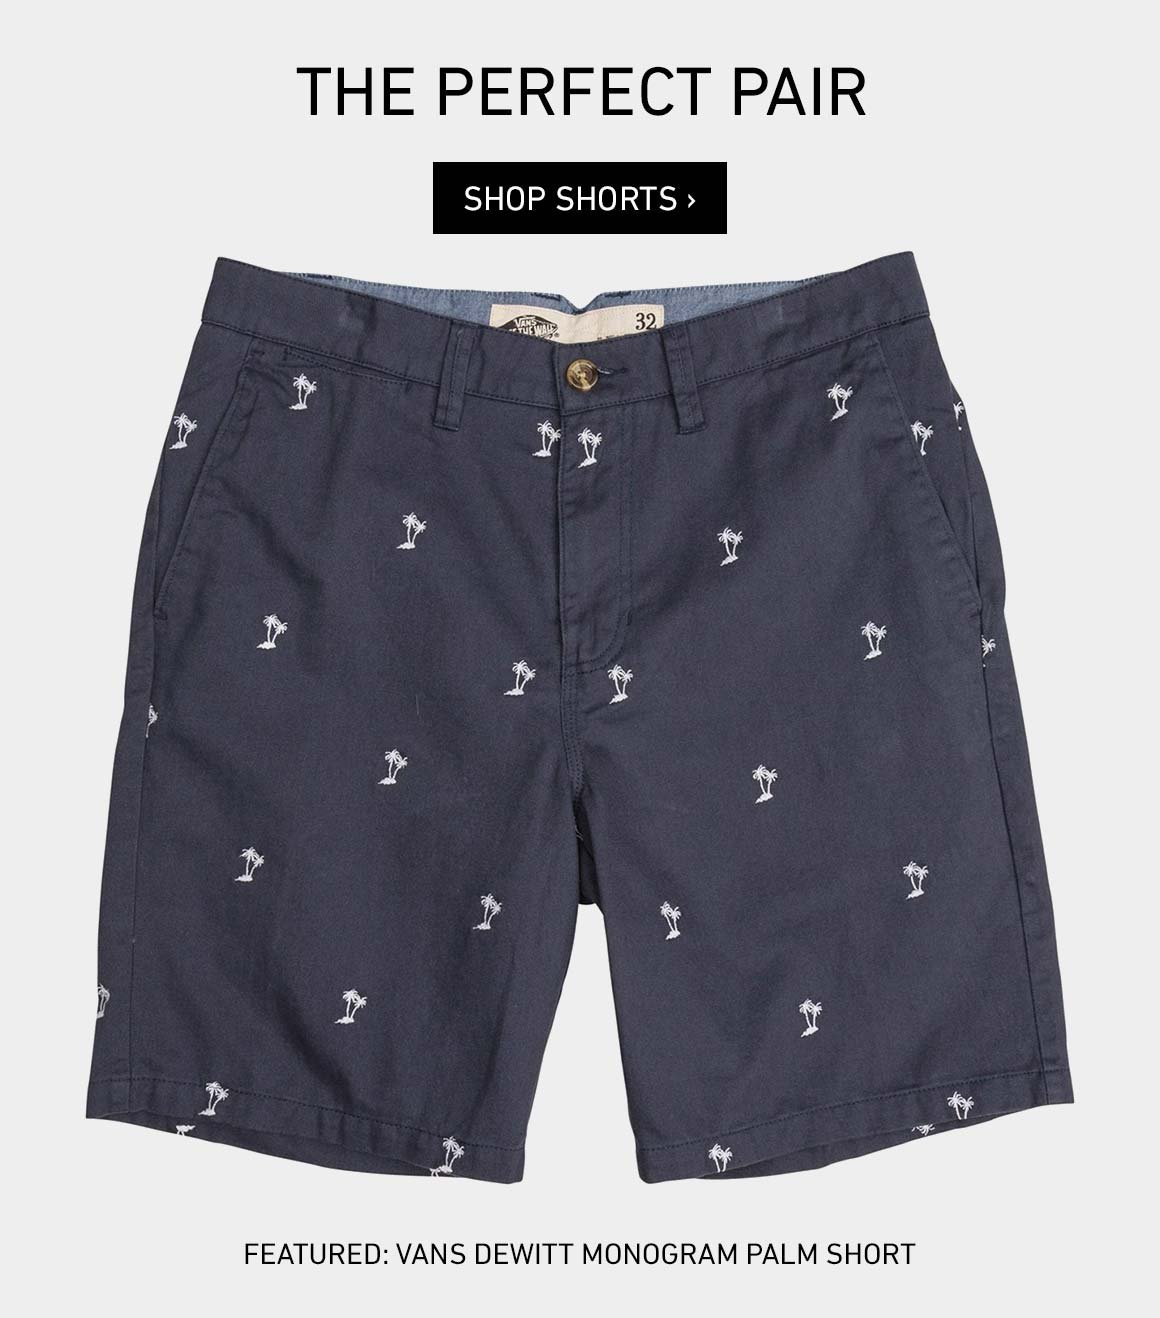 The Perfect Pair: New Shorts